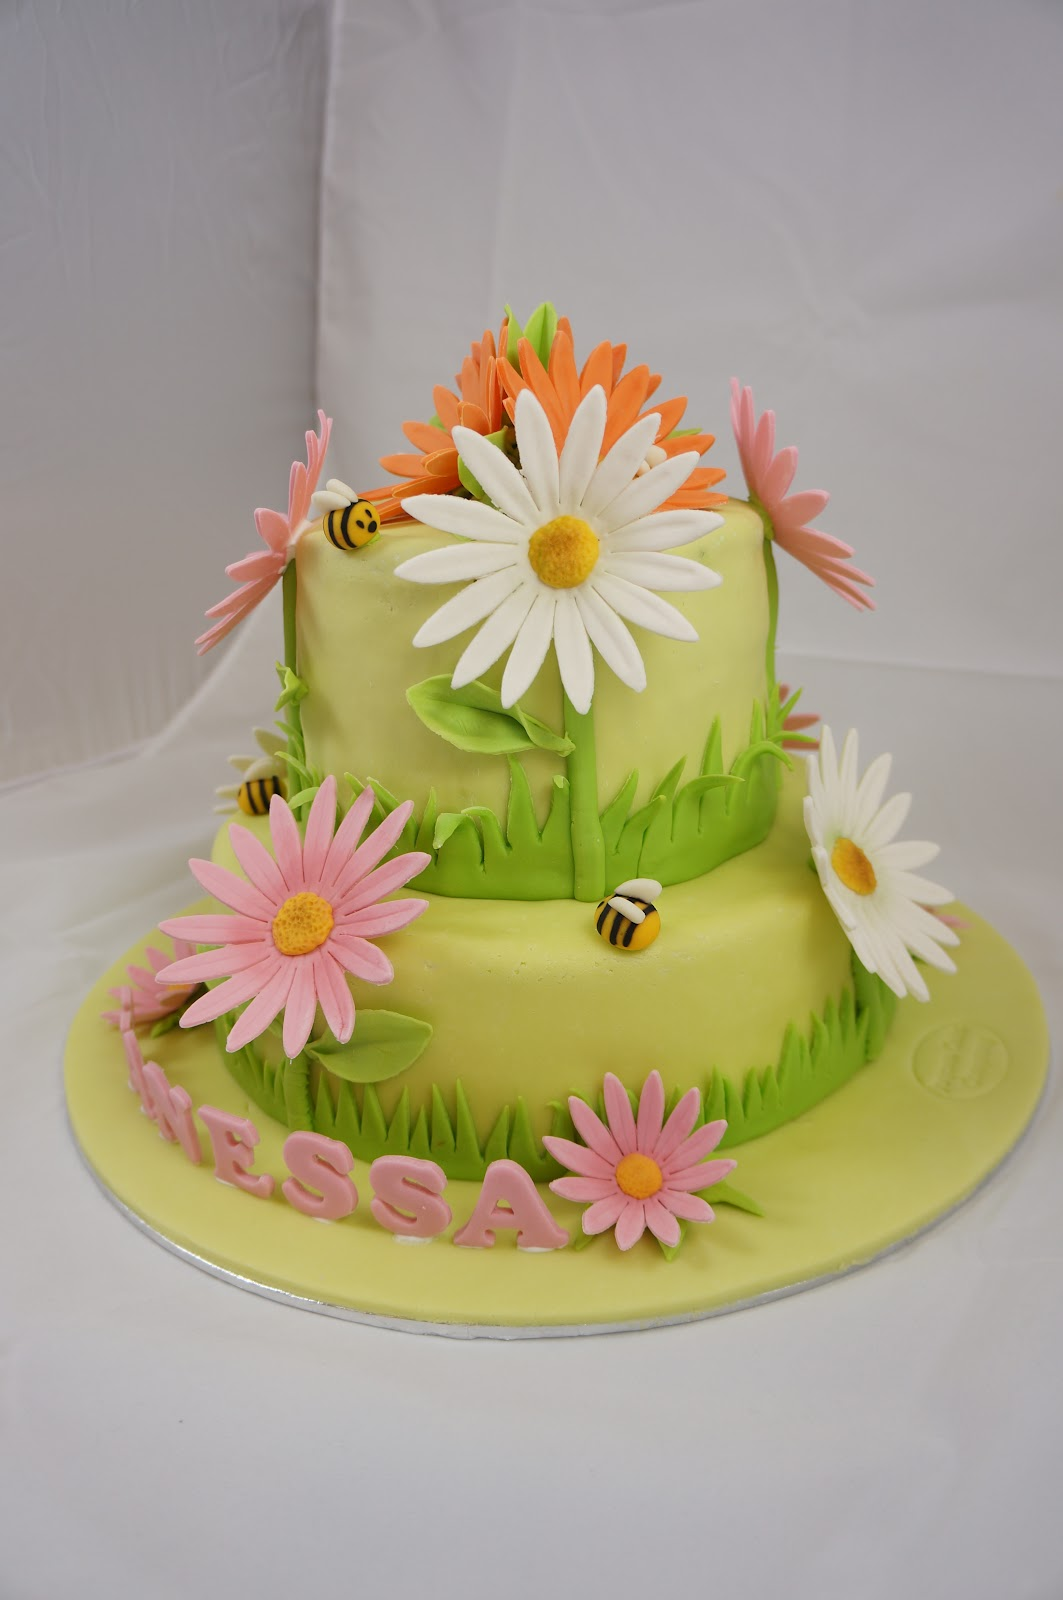 Joyous cake company daisy flower cake my daughter has been changing her mind about her 5 years old birthday cake she has considered tinker bell hello kitty barbie etc etc izmirmasajfo